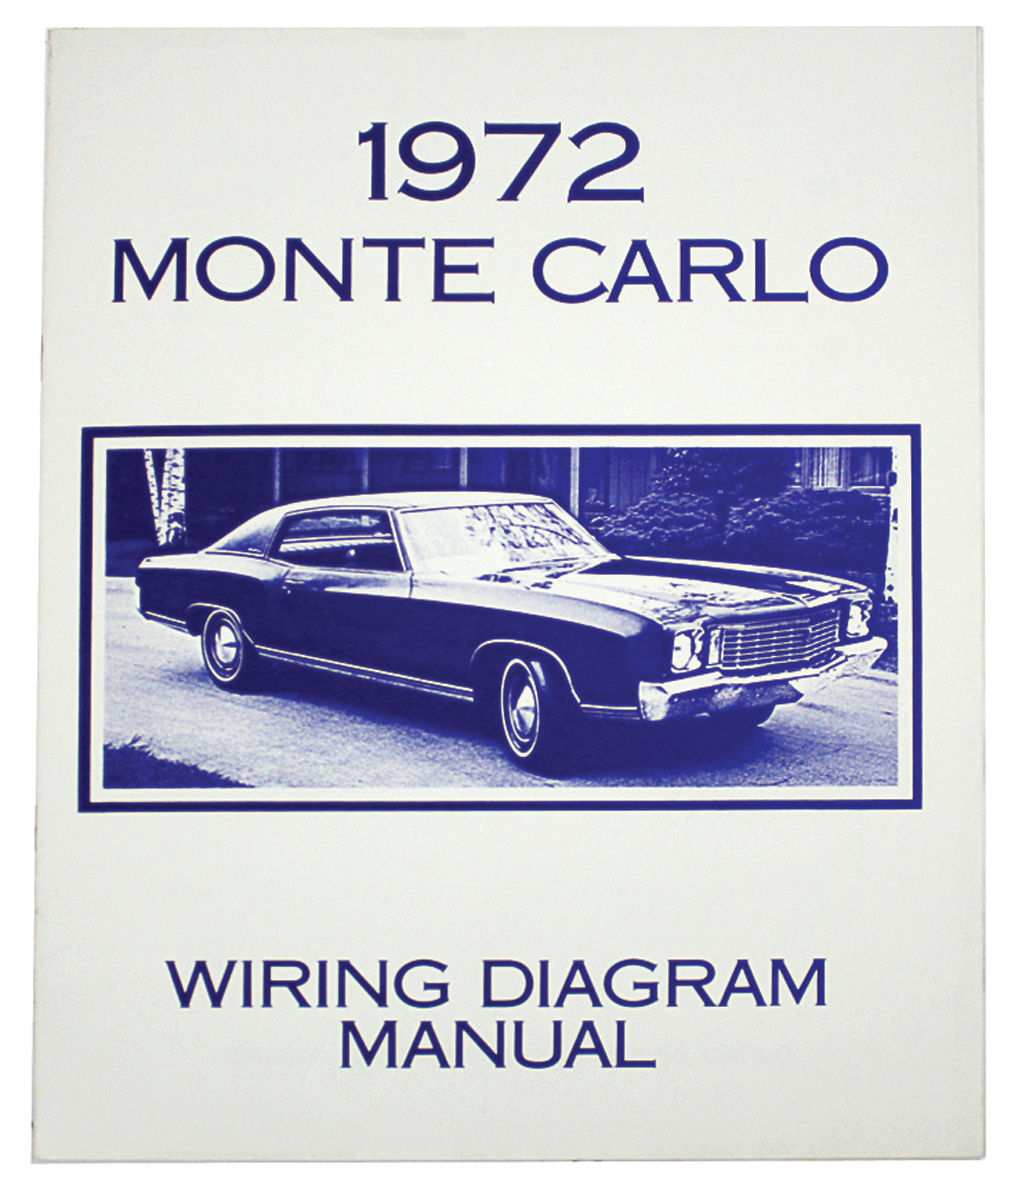 medium resolution of 1972 monte carlo wiring diagram wiring library for a 1999 chevy monte carlo wiring diagram 1970 monte carlo alternator wiring diagram